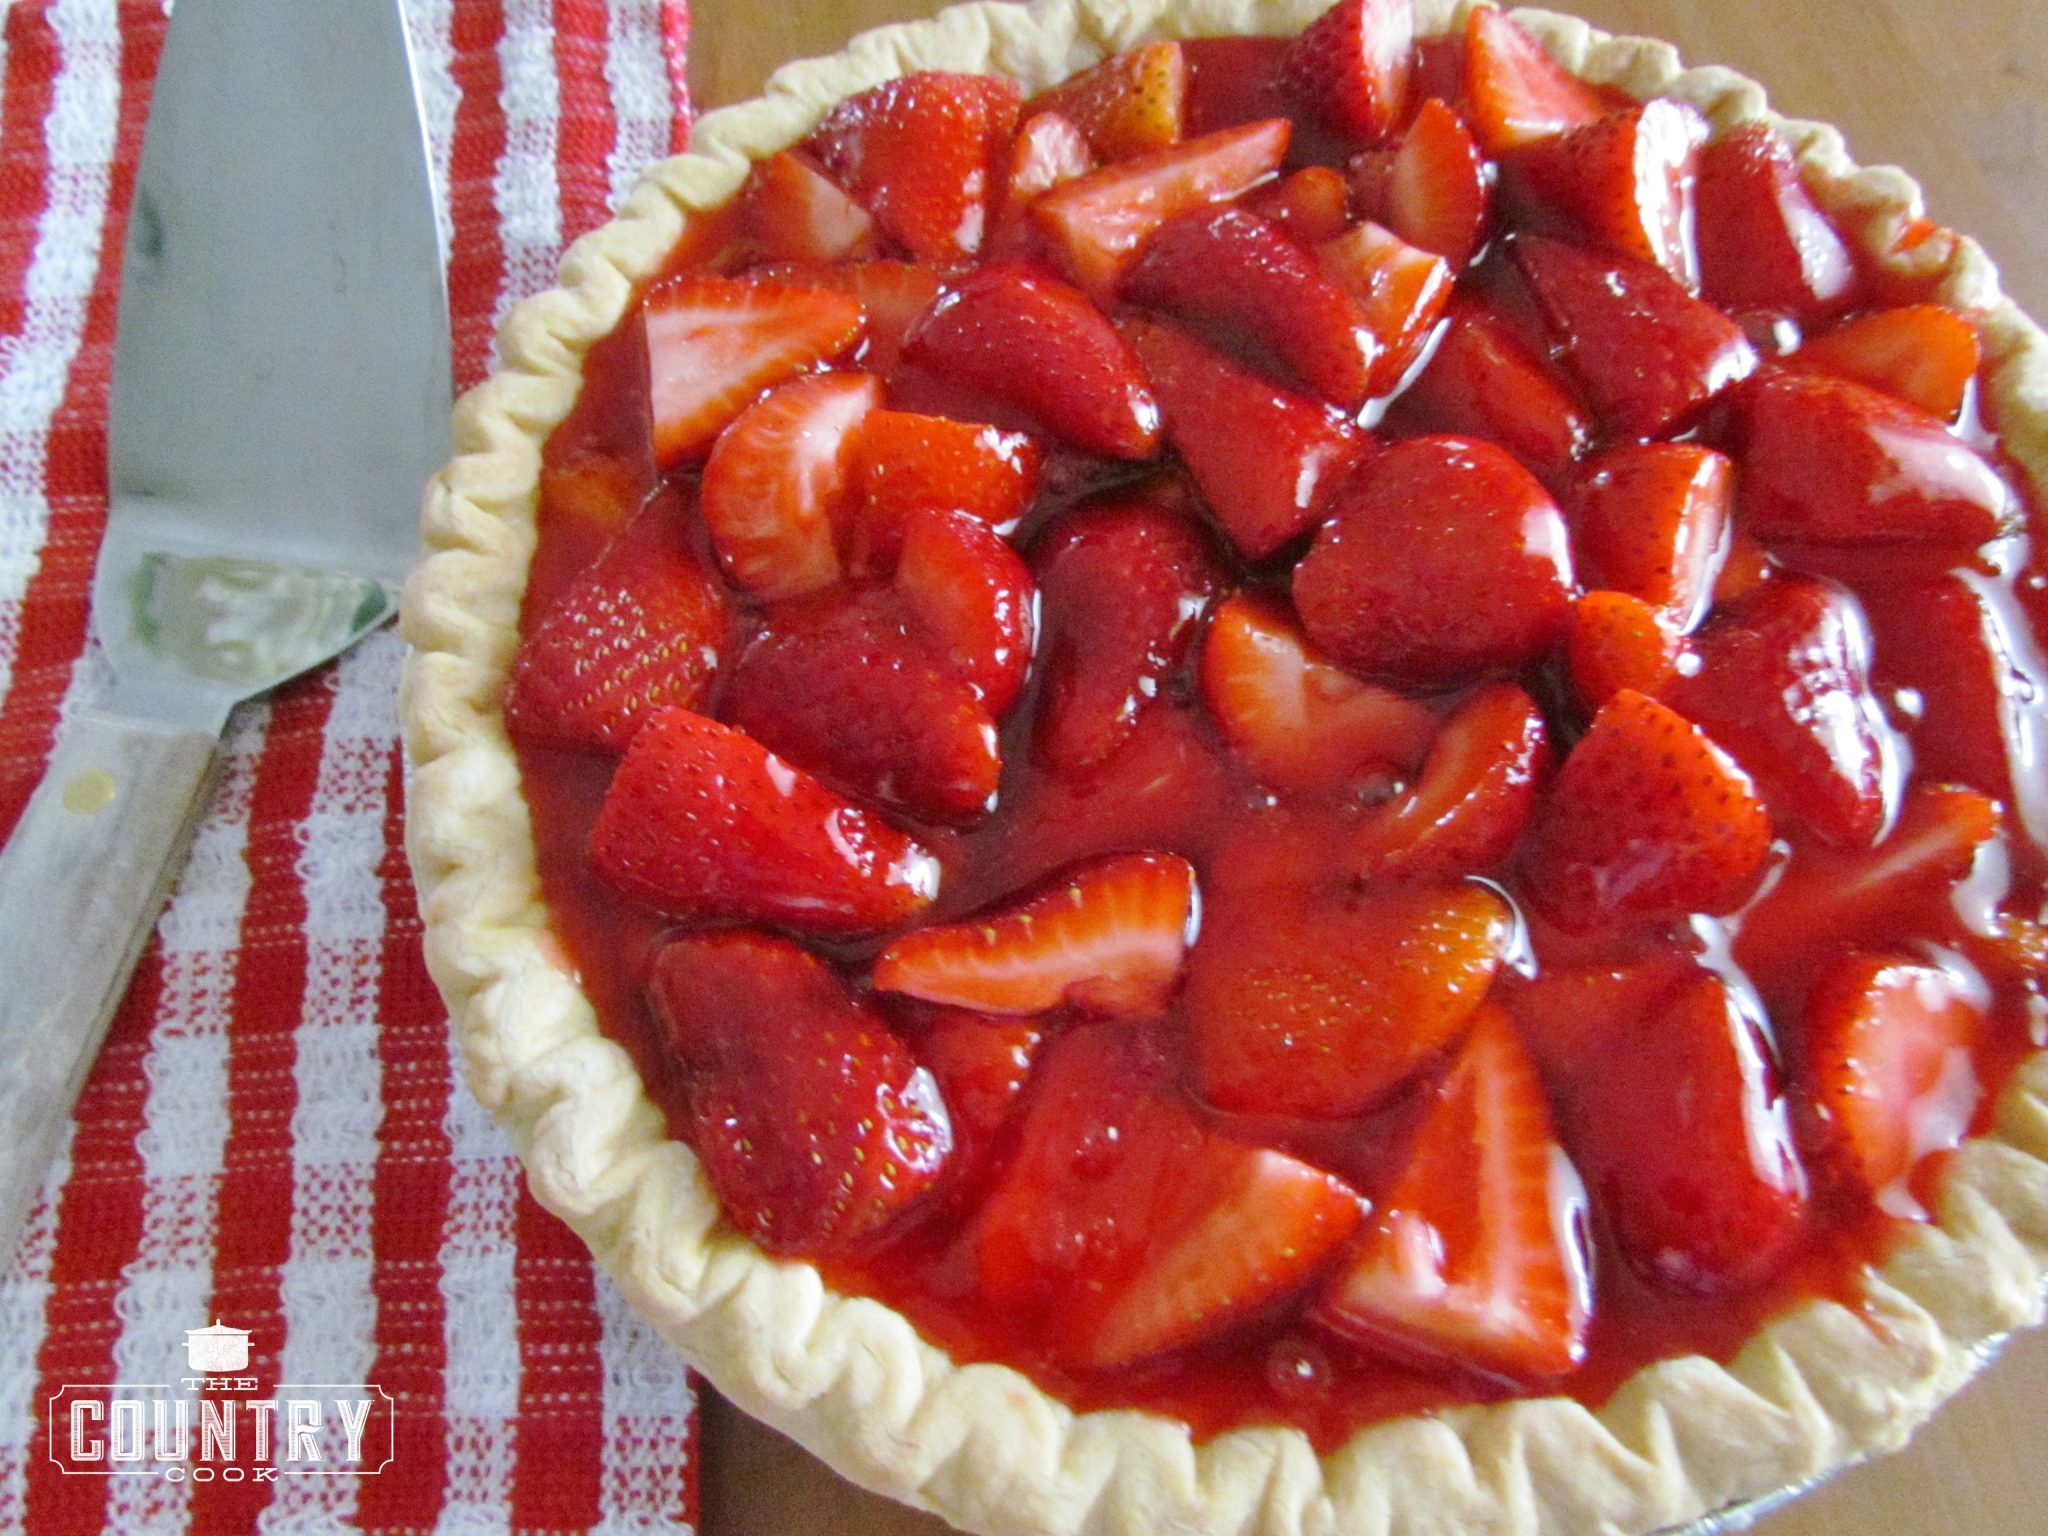 Shoney's Strawberry Pie - The Country Cook